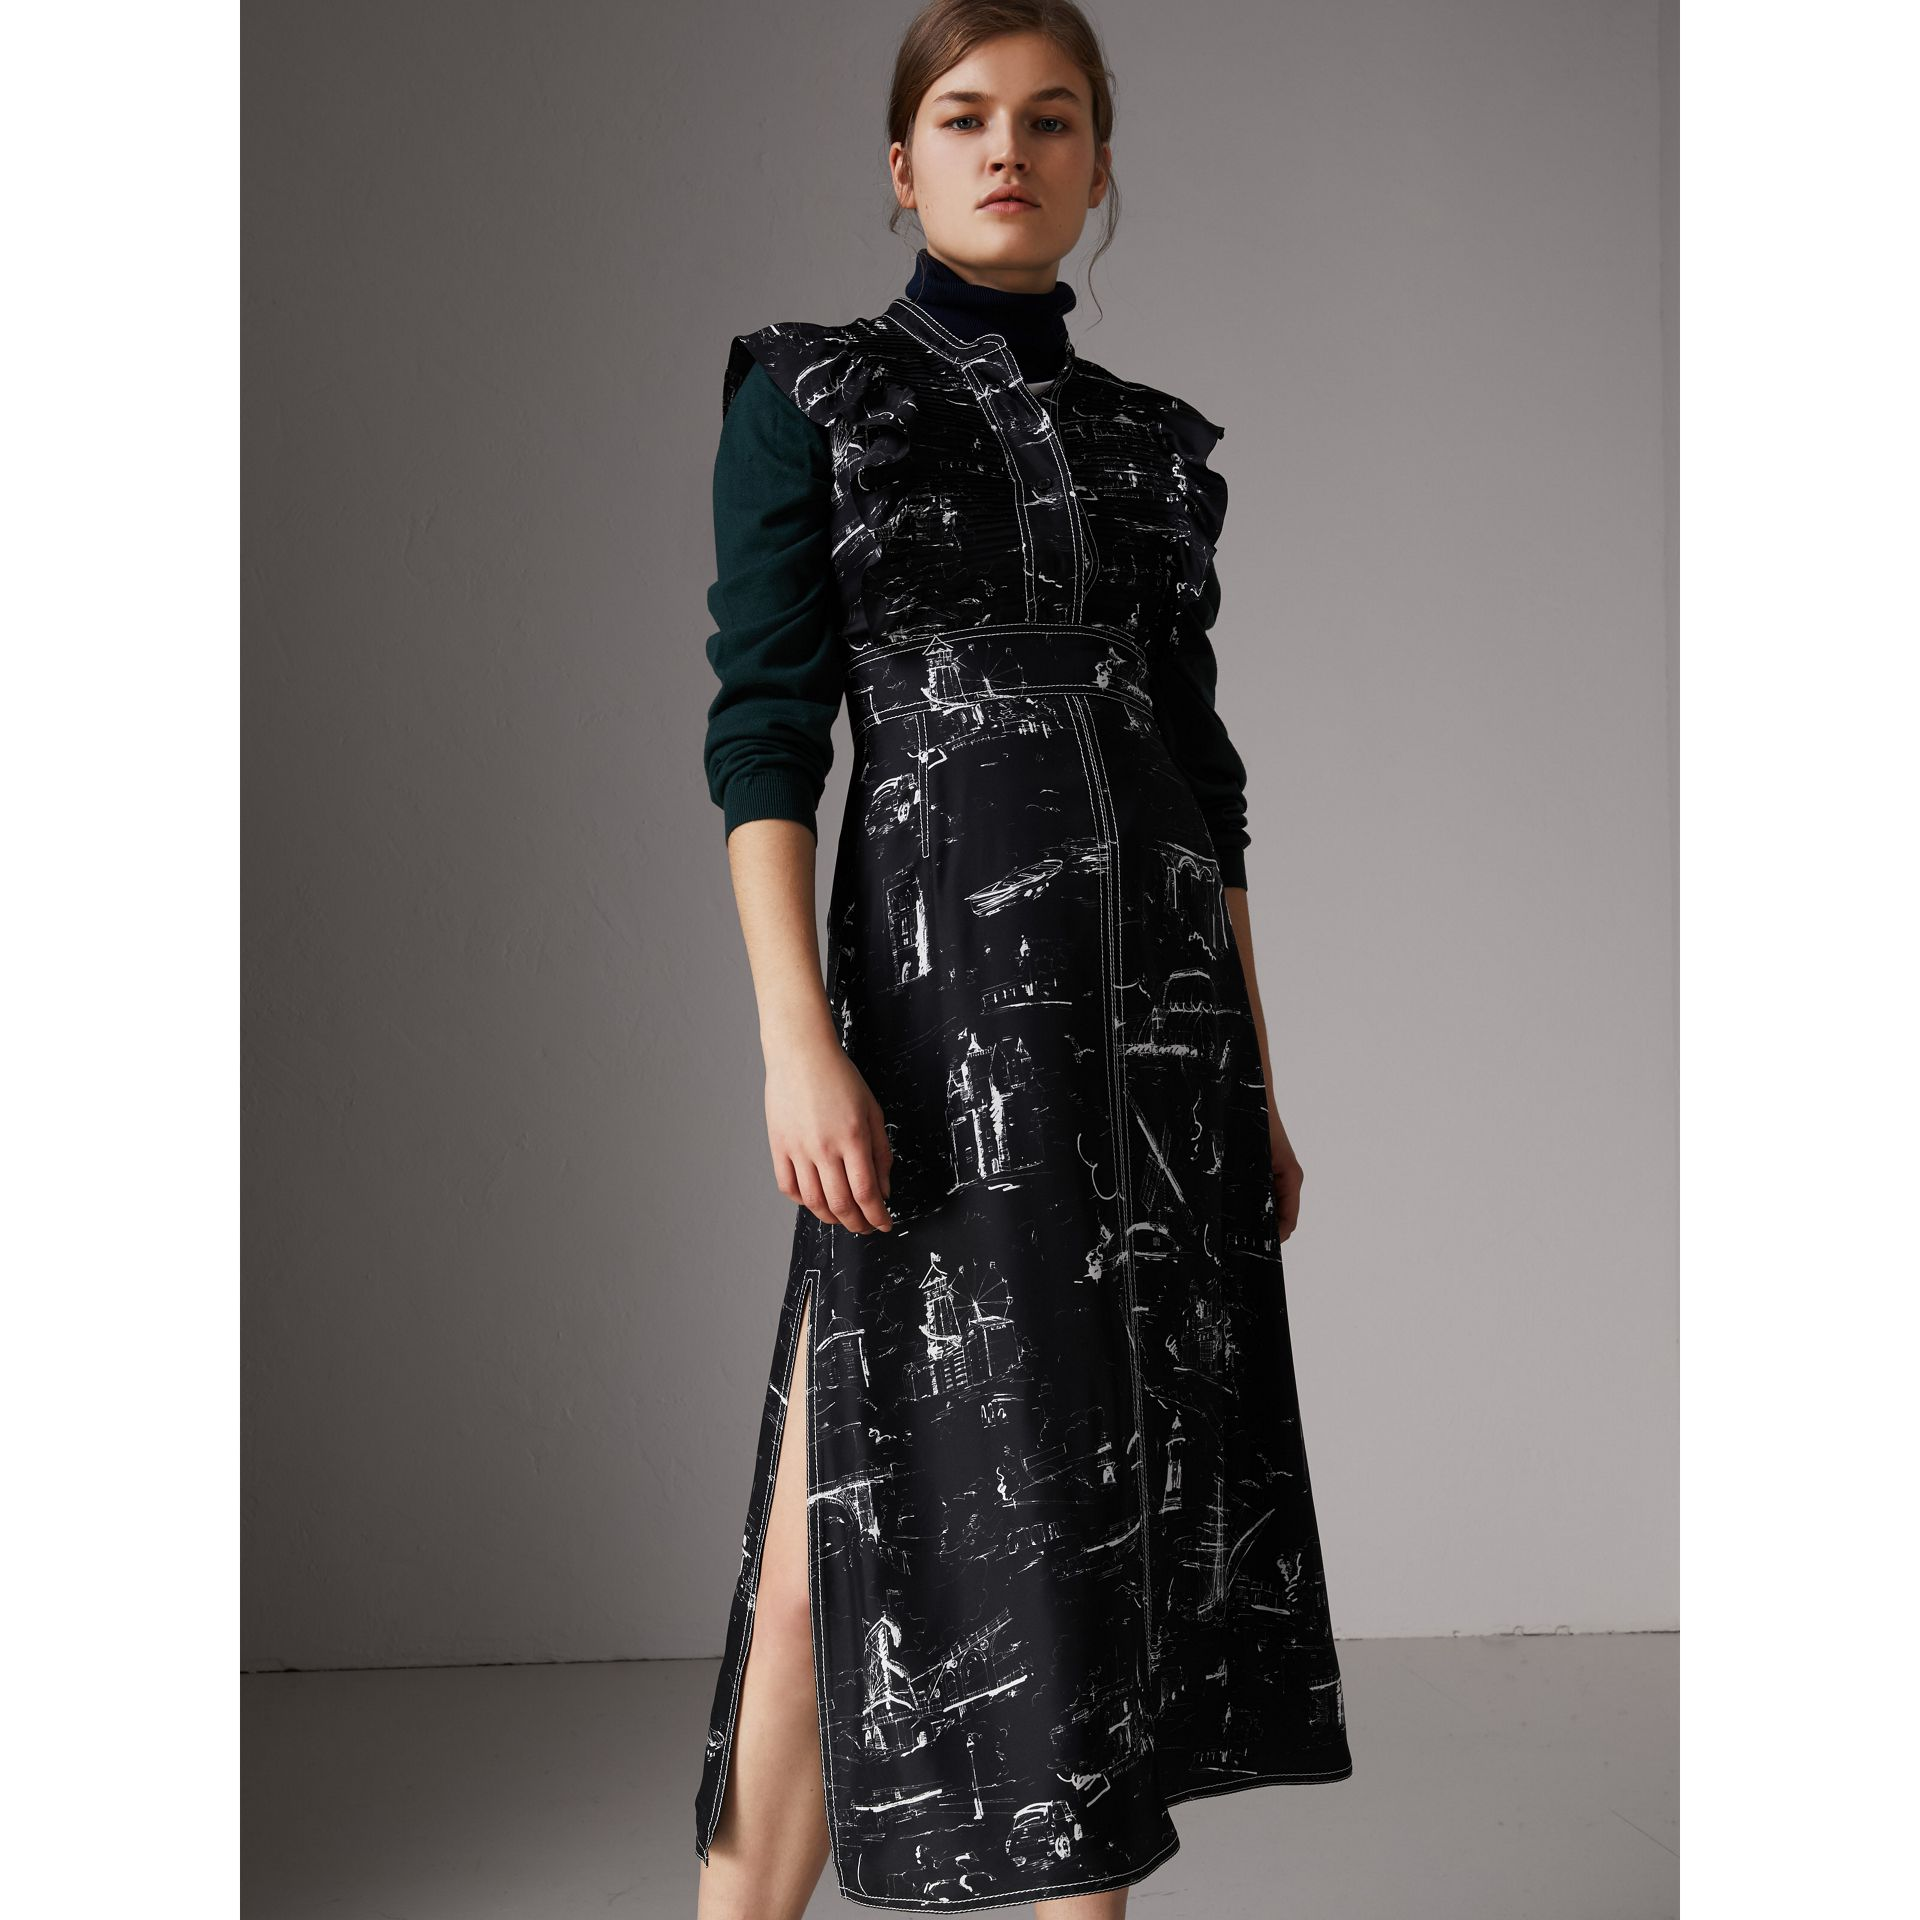 Ruffle Detail Landmark Print Silk Dress in Black - Women | Burberry United Kingdom - gallery image 4